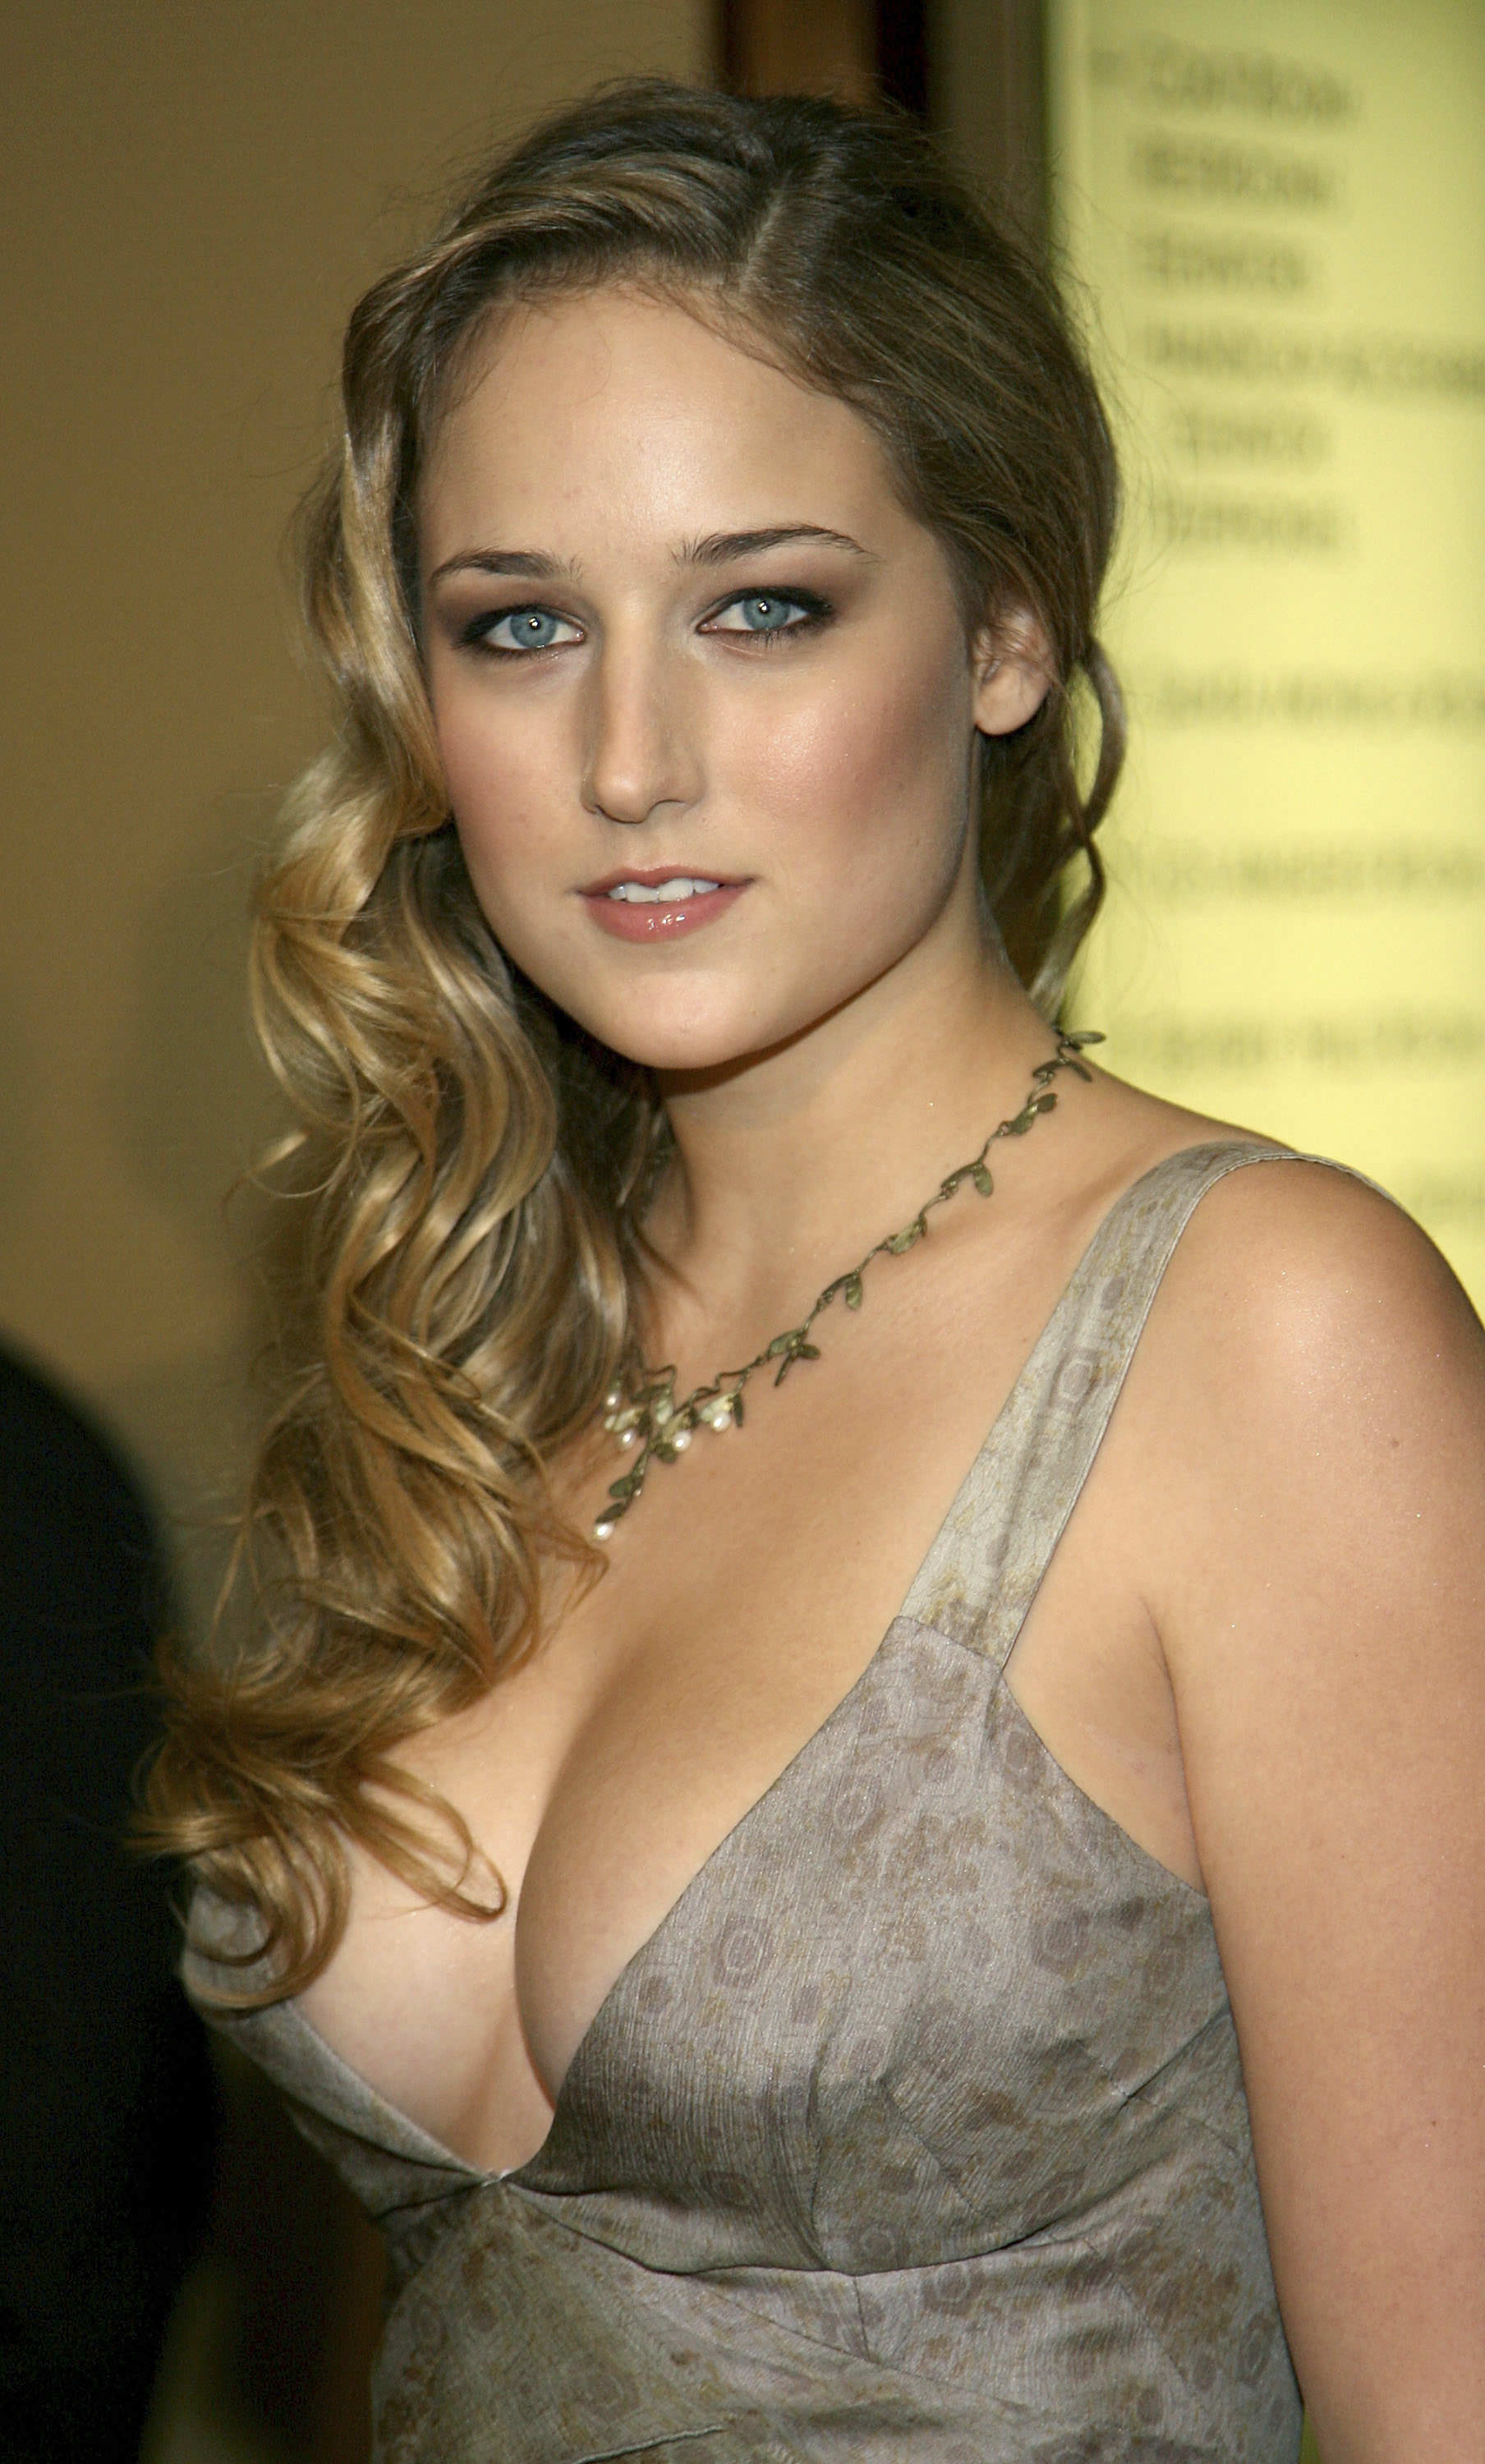 49 Hot Pictures Of Leelee Sobieski Which Will Make You Want Her Now